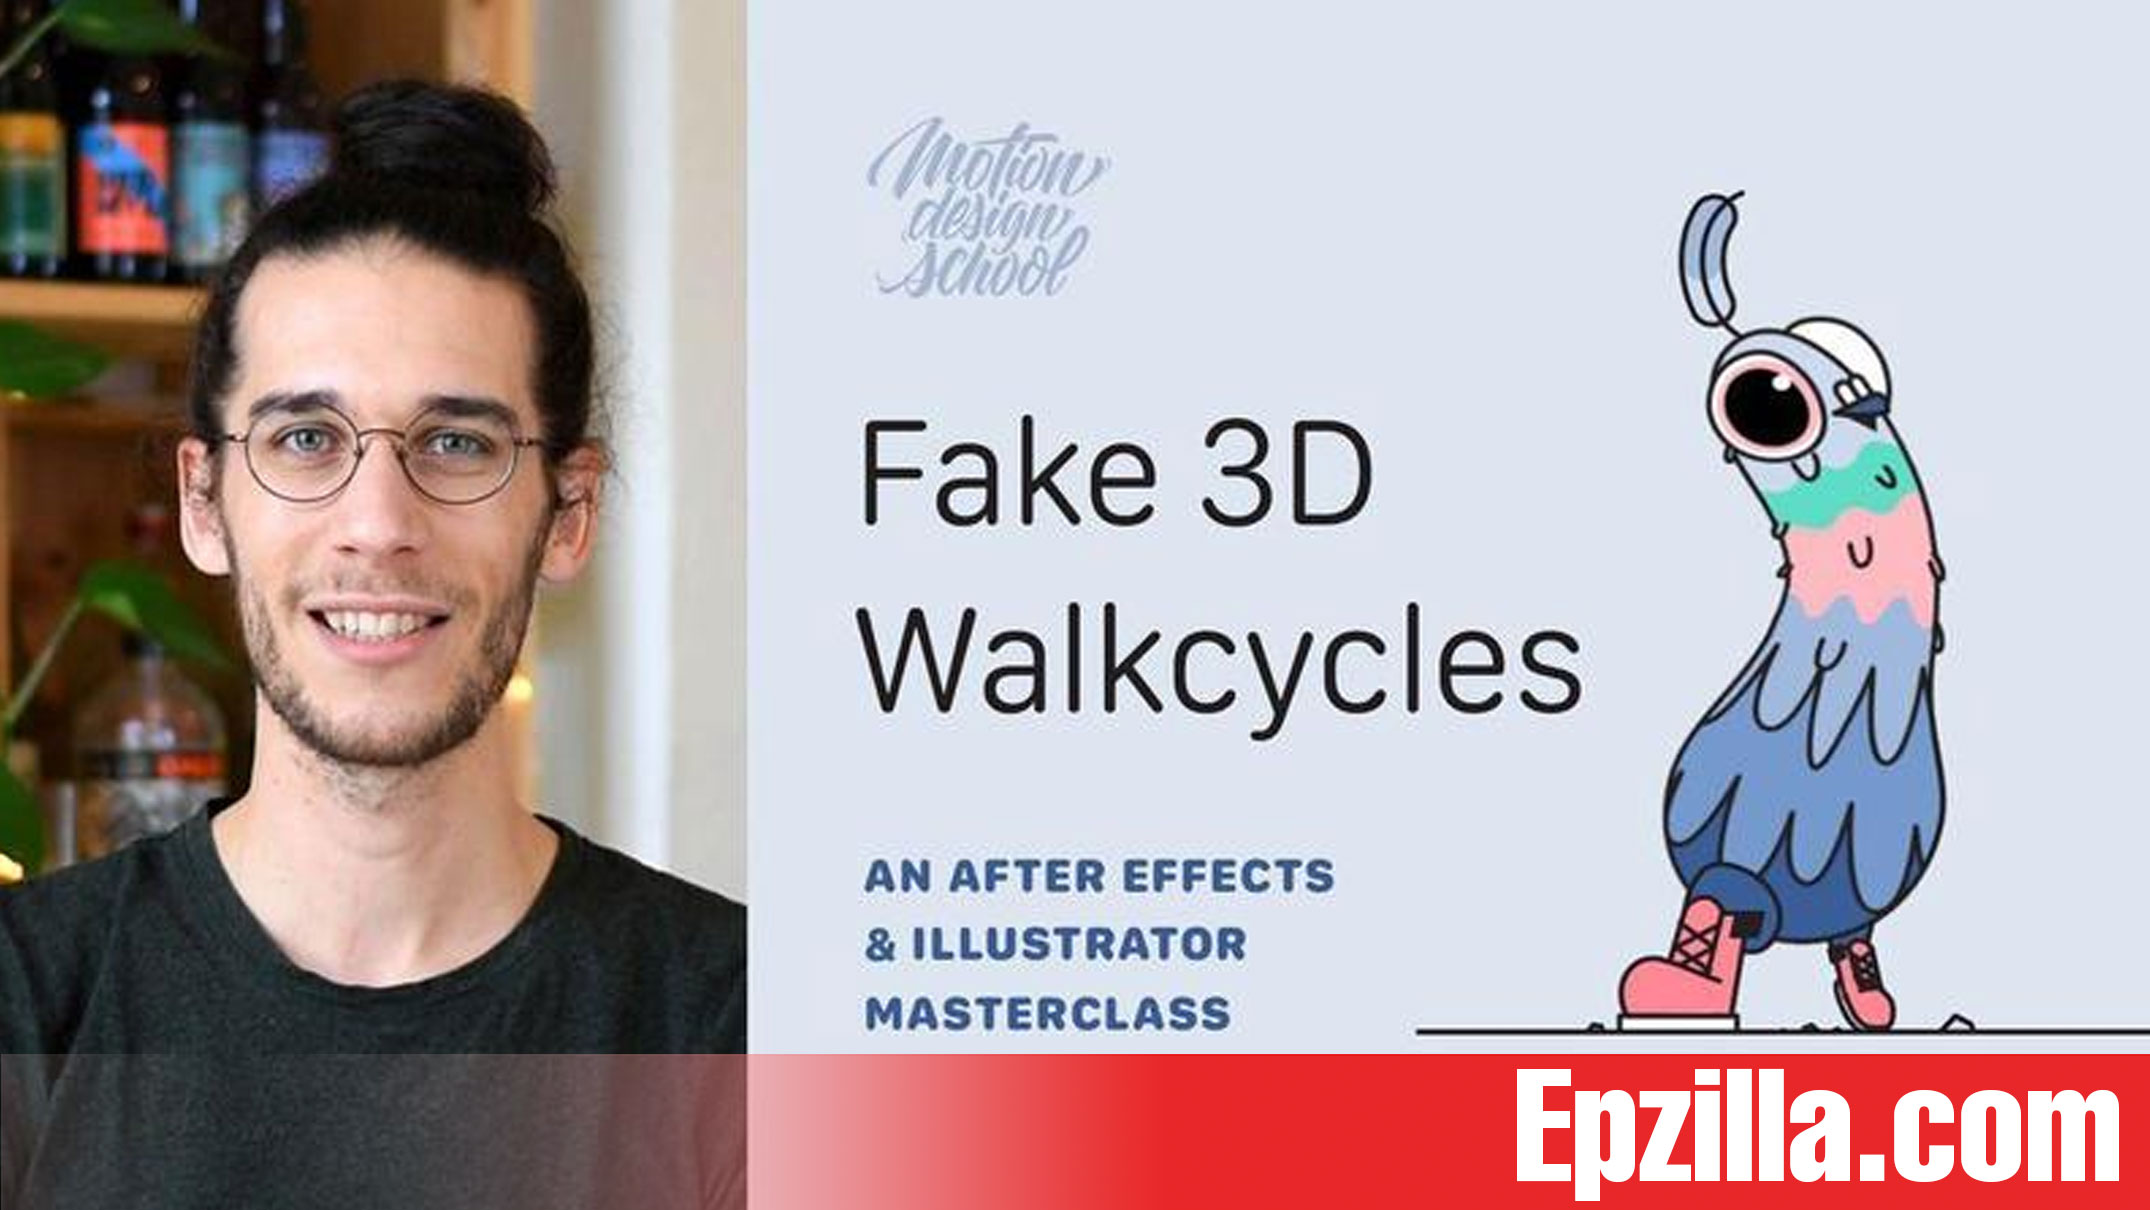 Motion Design School Fake 3D Walkcycles in After Effects Free Download Epzilla.com